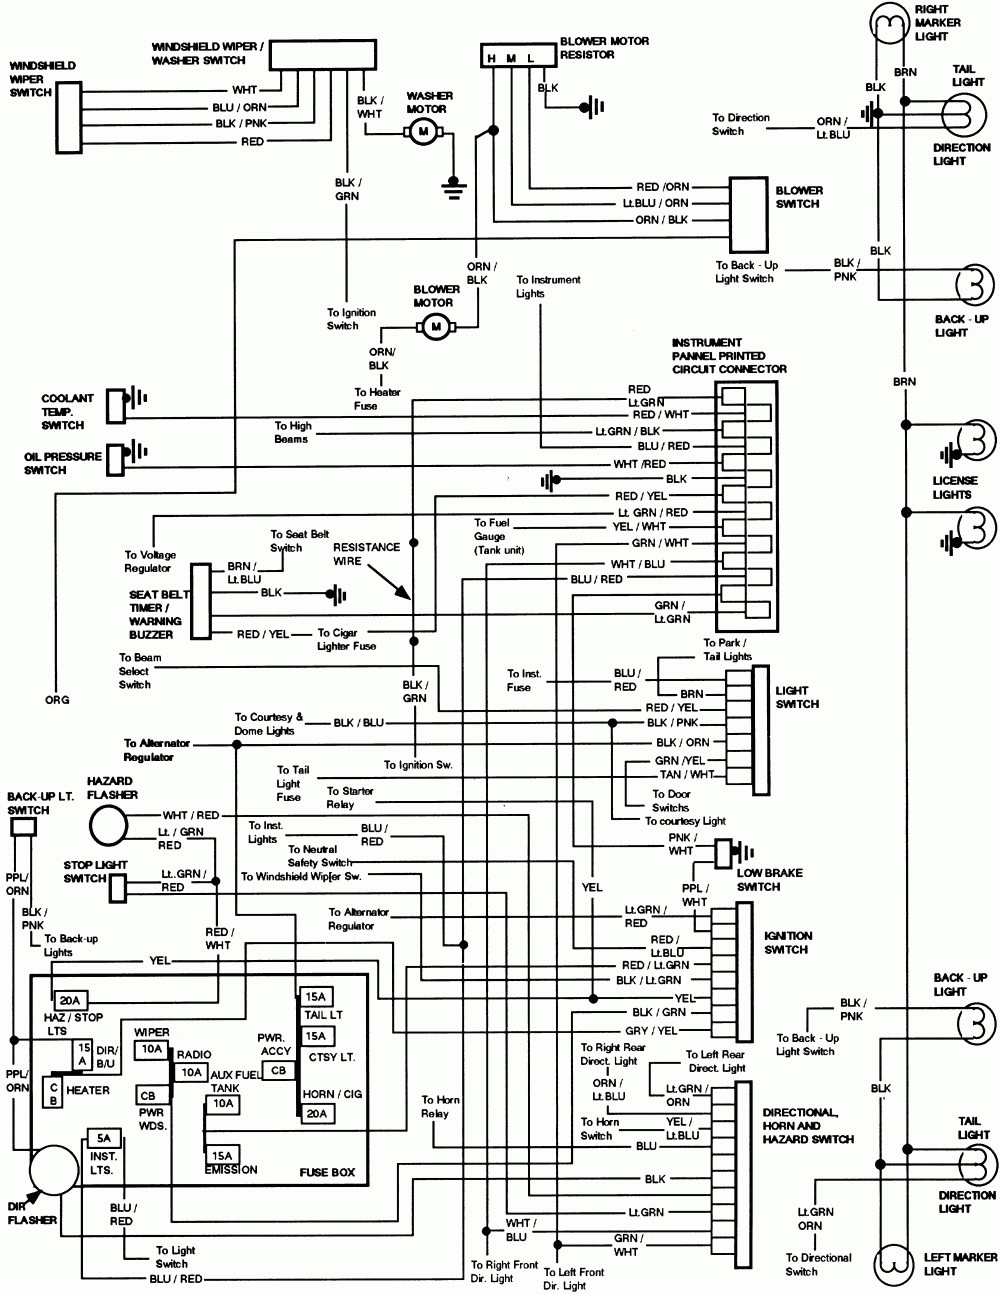 1990 Ford Mustang Color Wiring Diagram | Wiring Diagram  Ford F Wiring Diagram on ford super duty, 1989 ford wiring diagram, ford mirror wiring diagram, 01 dodge 1500 wiring diagram, ford 7 pin wiring diagram, 1987 ford e350 wiring diagram, ford oxygen sensor wiring 1990, ford fairlane wiring diagram, 1956 ford wiring diagram, ford truck electrical diagrams, ford f-350 4x4 wiring diagrams, f250 wiring diagram, 79 ford wiring diagram, ford e 450 wiring diagrams, ford aerostar wiring diagram, ford alternator plug wiring diagram, 86 ford wiring diagram, ford econoline van wiring diagram, ford falcon wiring-diagram, ford electrical wiring diagrams,